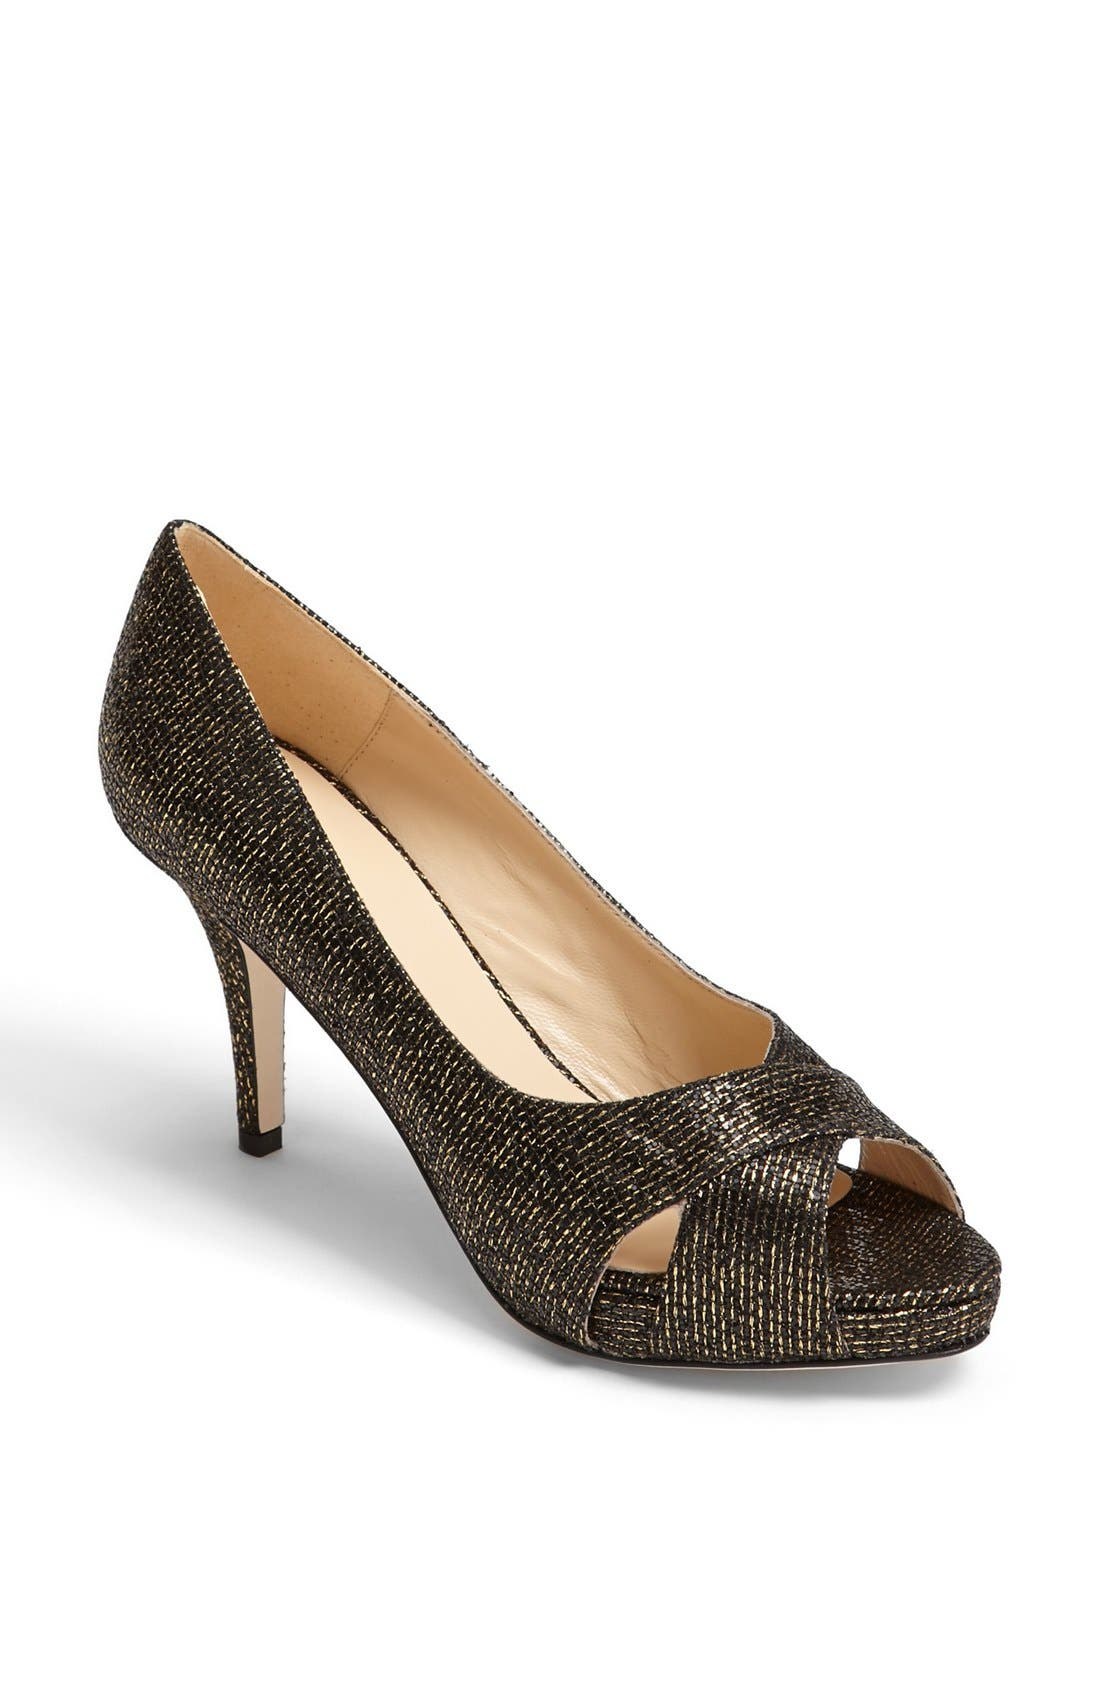 Main Image - kate spade new york 'billie' pump